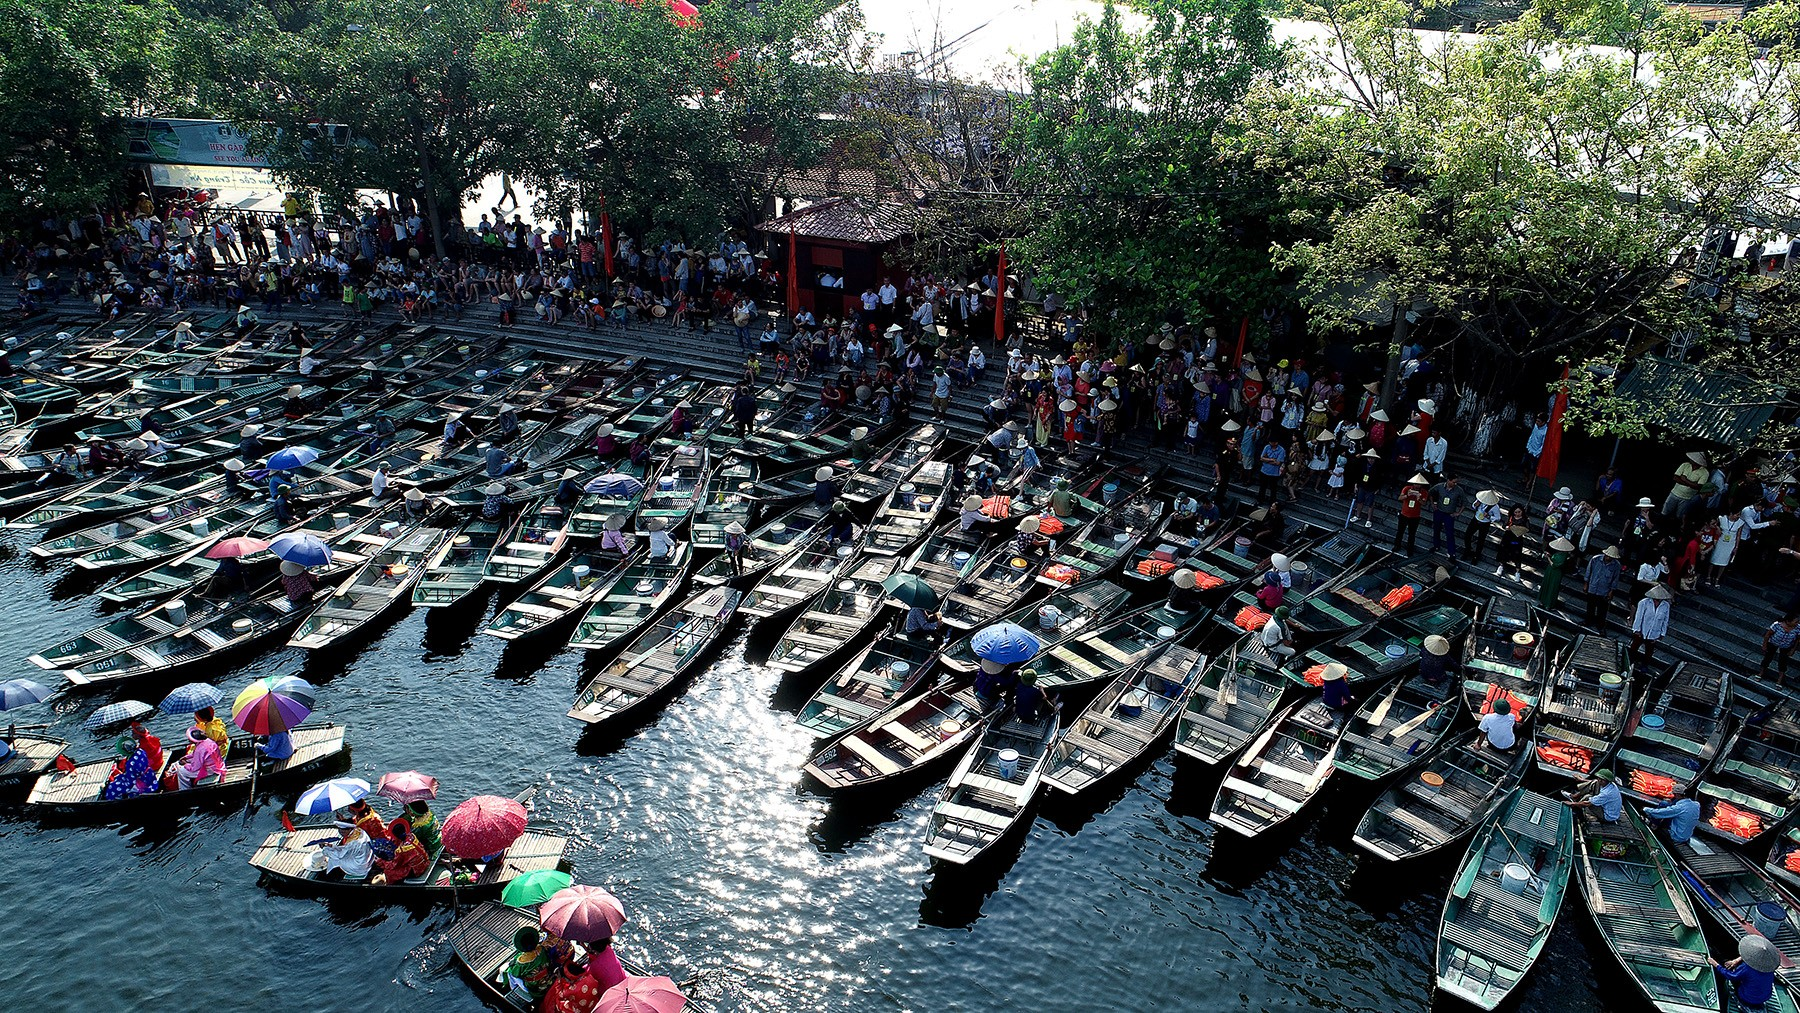 Hundreds of boats waited at the Van Lam dock